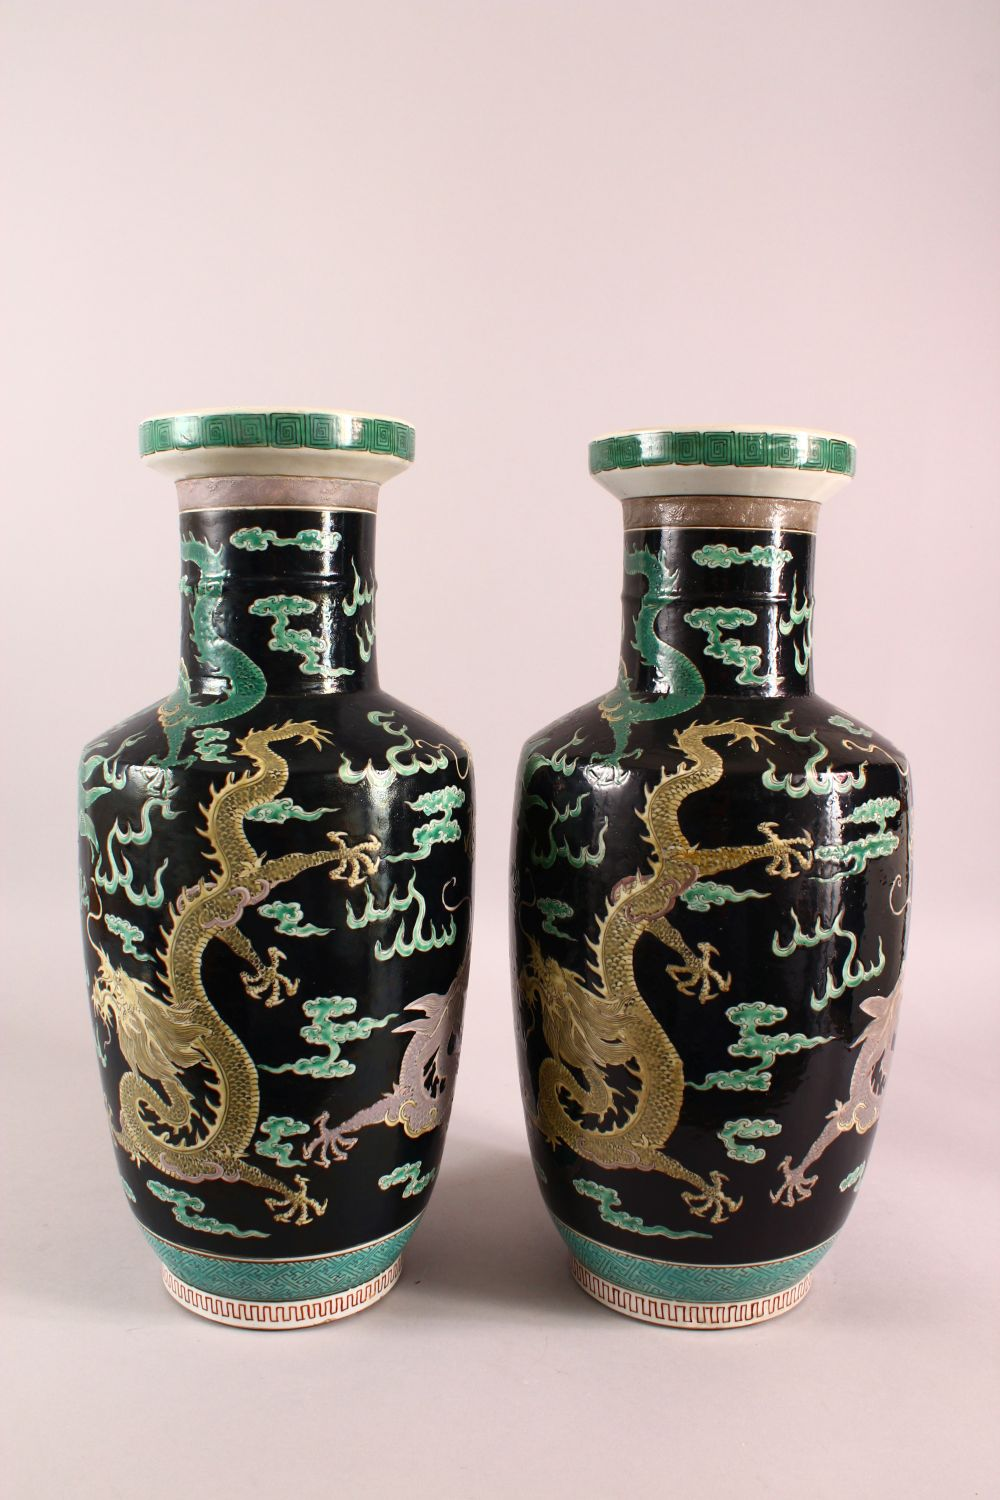 A LARGE PAIR OF CHINESE FAMILLE NOIR PORCELAIN DRAGON VASES, each vase with a black ground depicting - Image 9 of 13